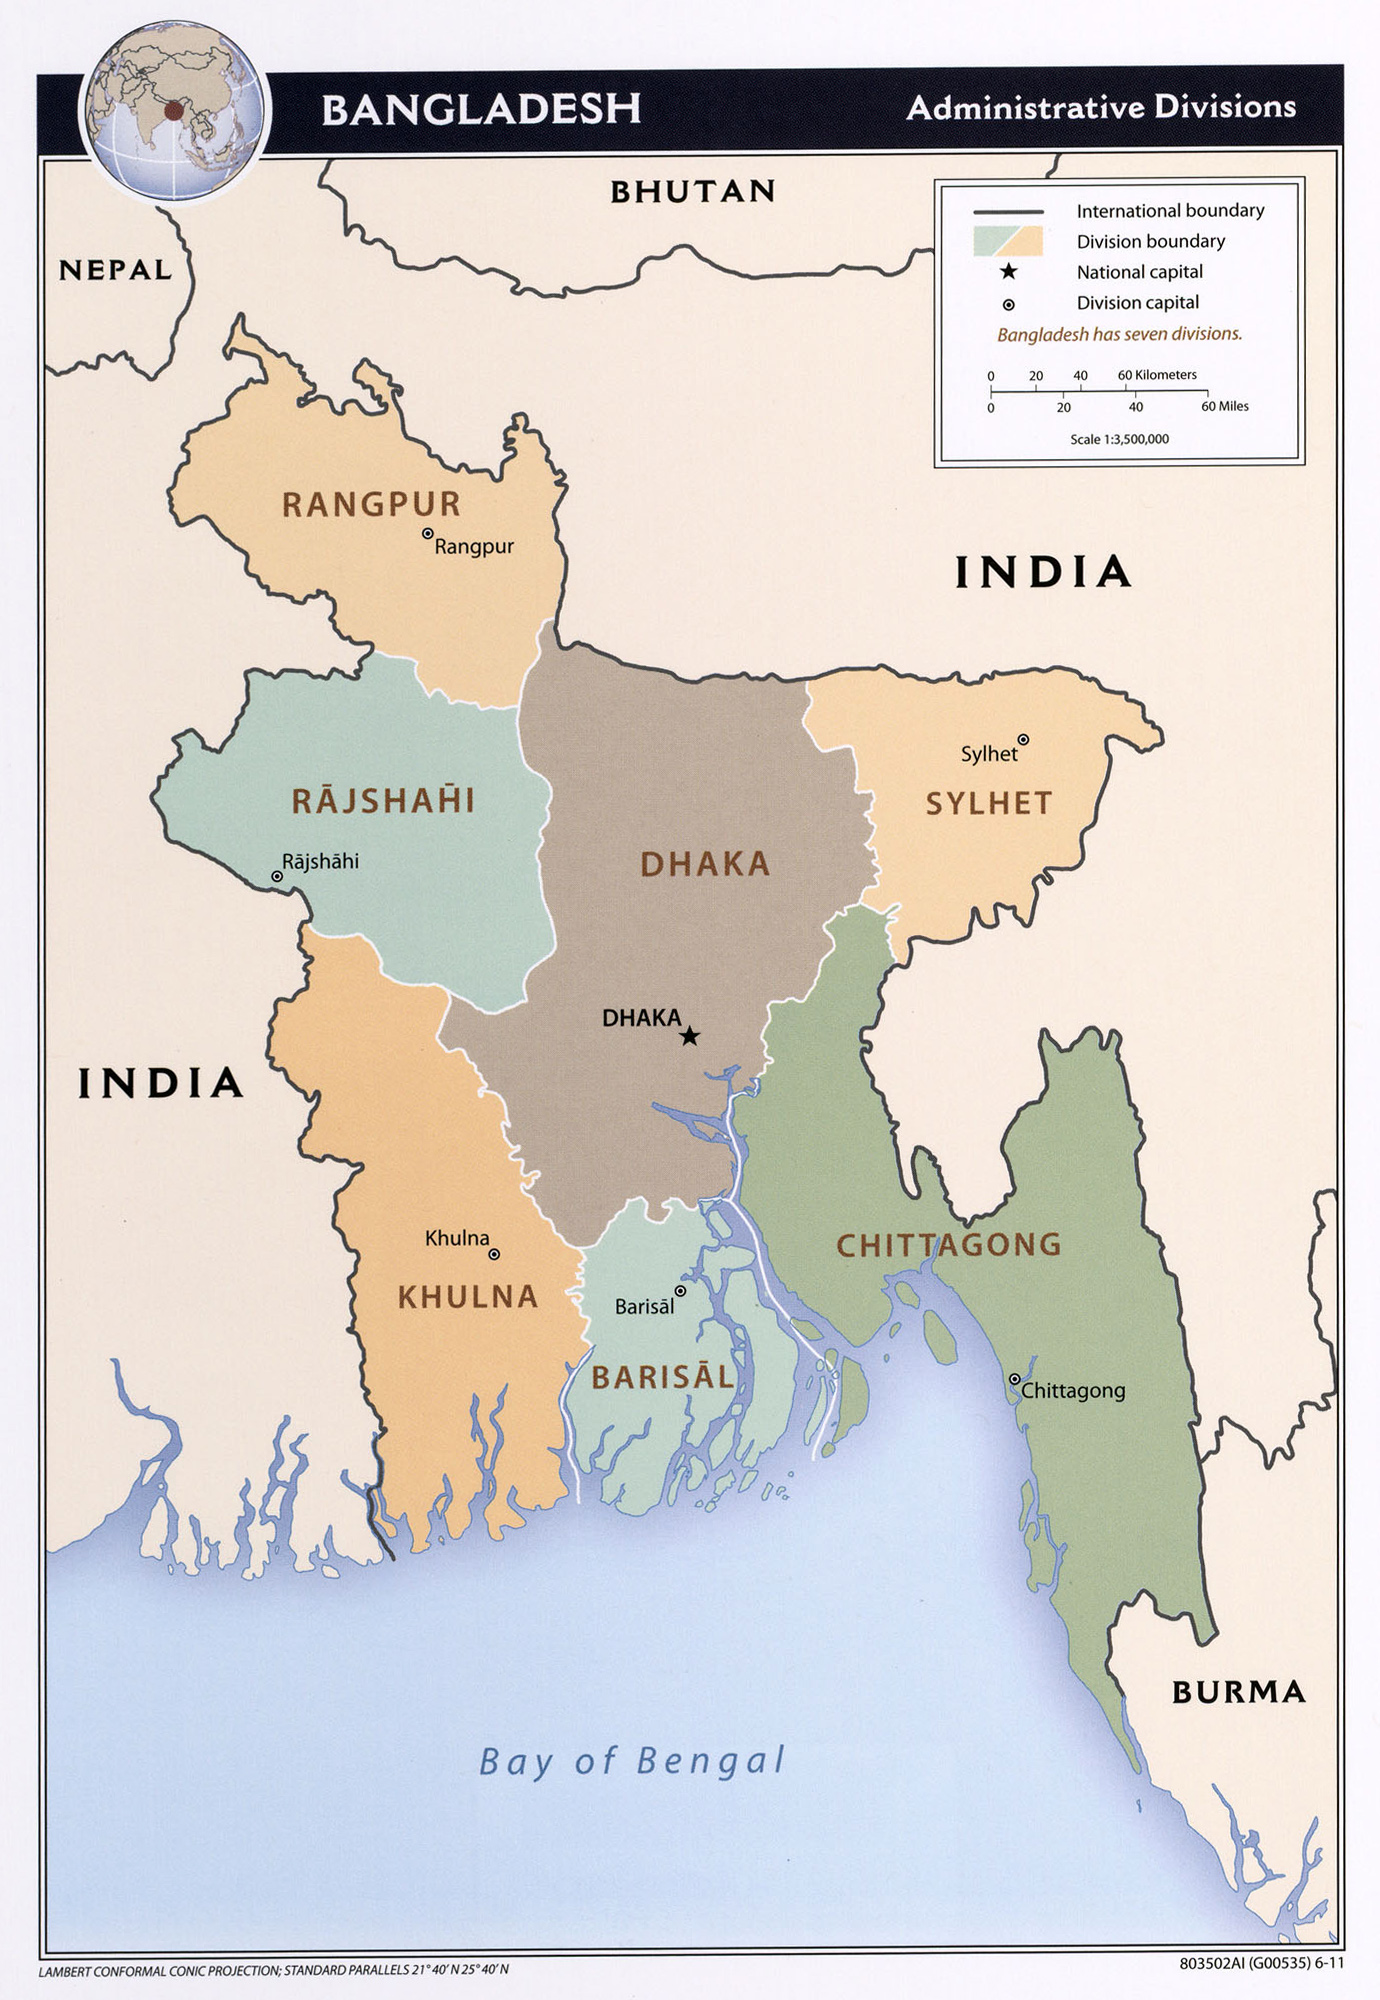 Maps of bangladesh detailed map of bangladesh in english tourist large detailed administrative divisions map of bangladesh 2011 gumiabroncs Image collections